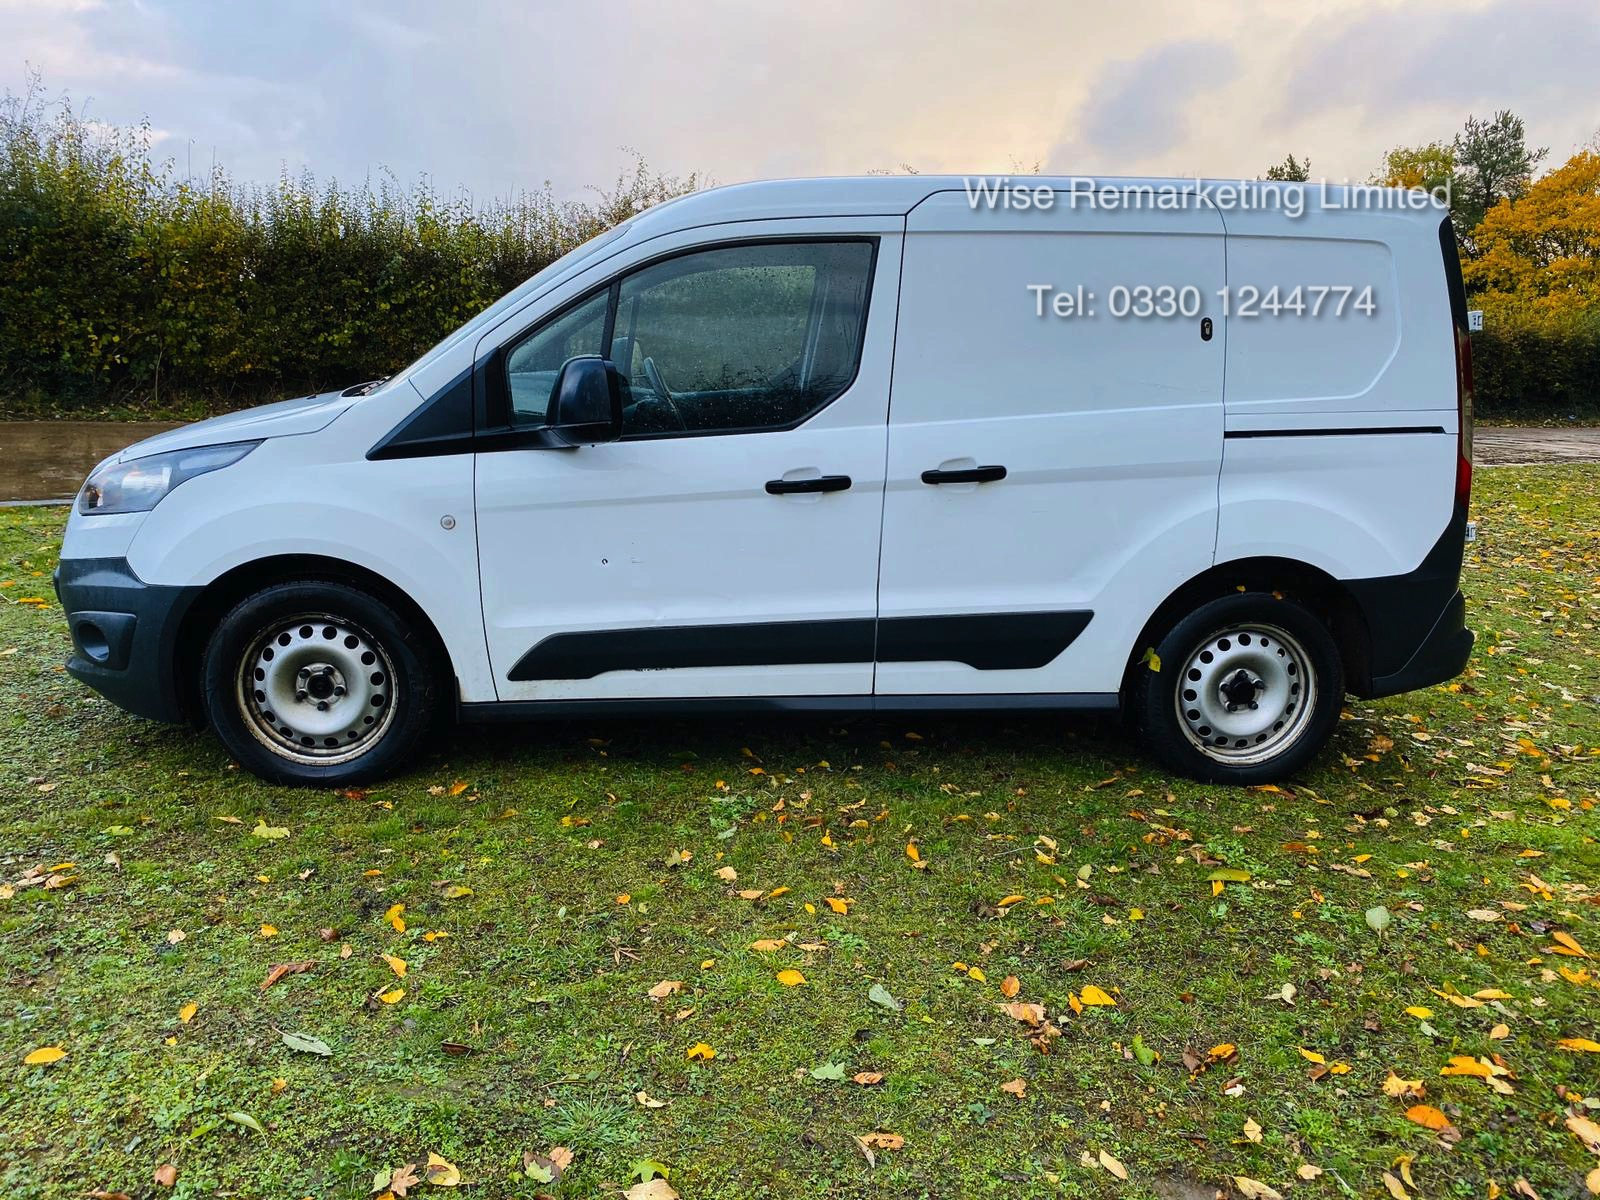 Ford Transit Connect 200 1.6 TDCI - 2016 16 Reg - 1 Keeper From New - Elec Pack -Bluetooth - Image 5 of 18